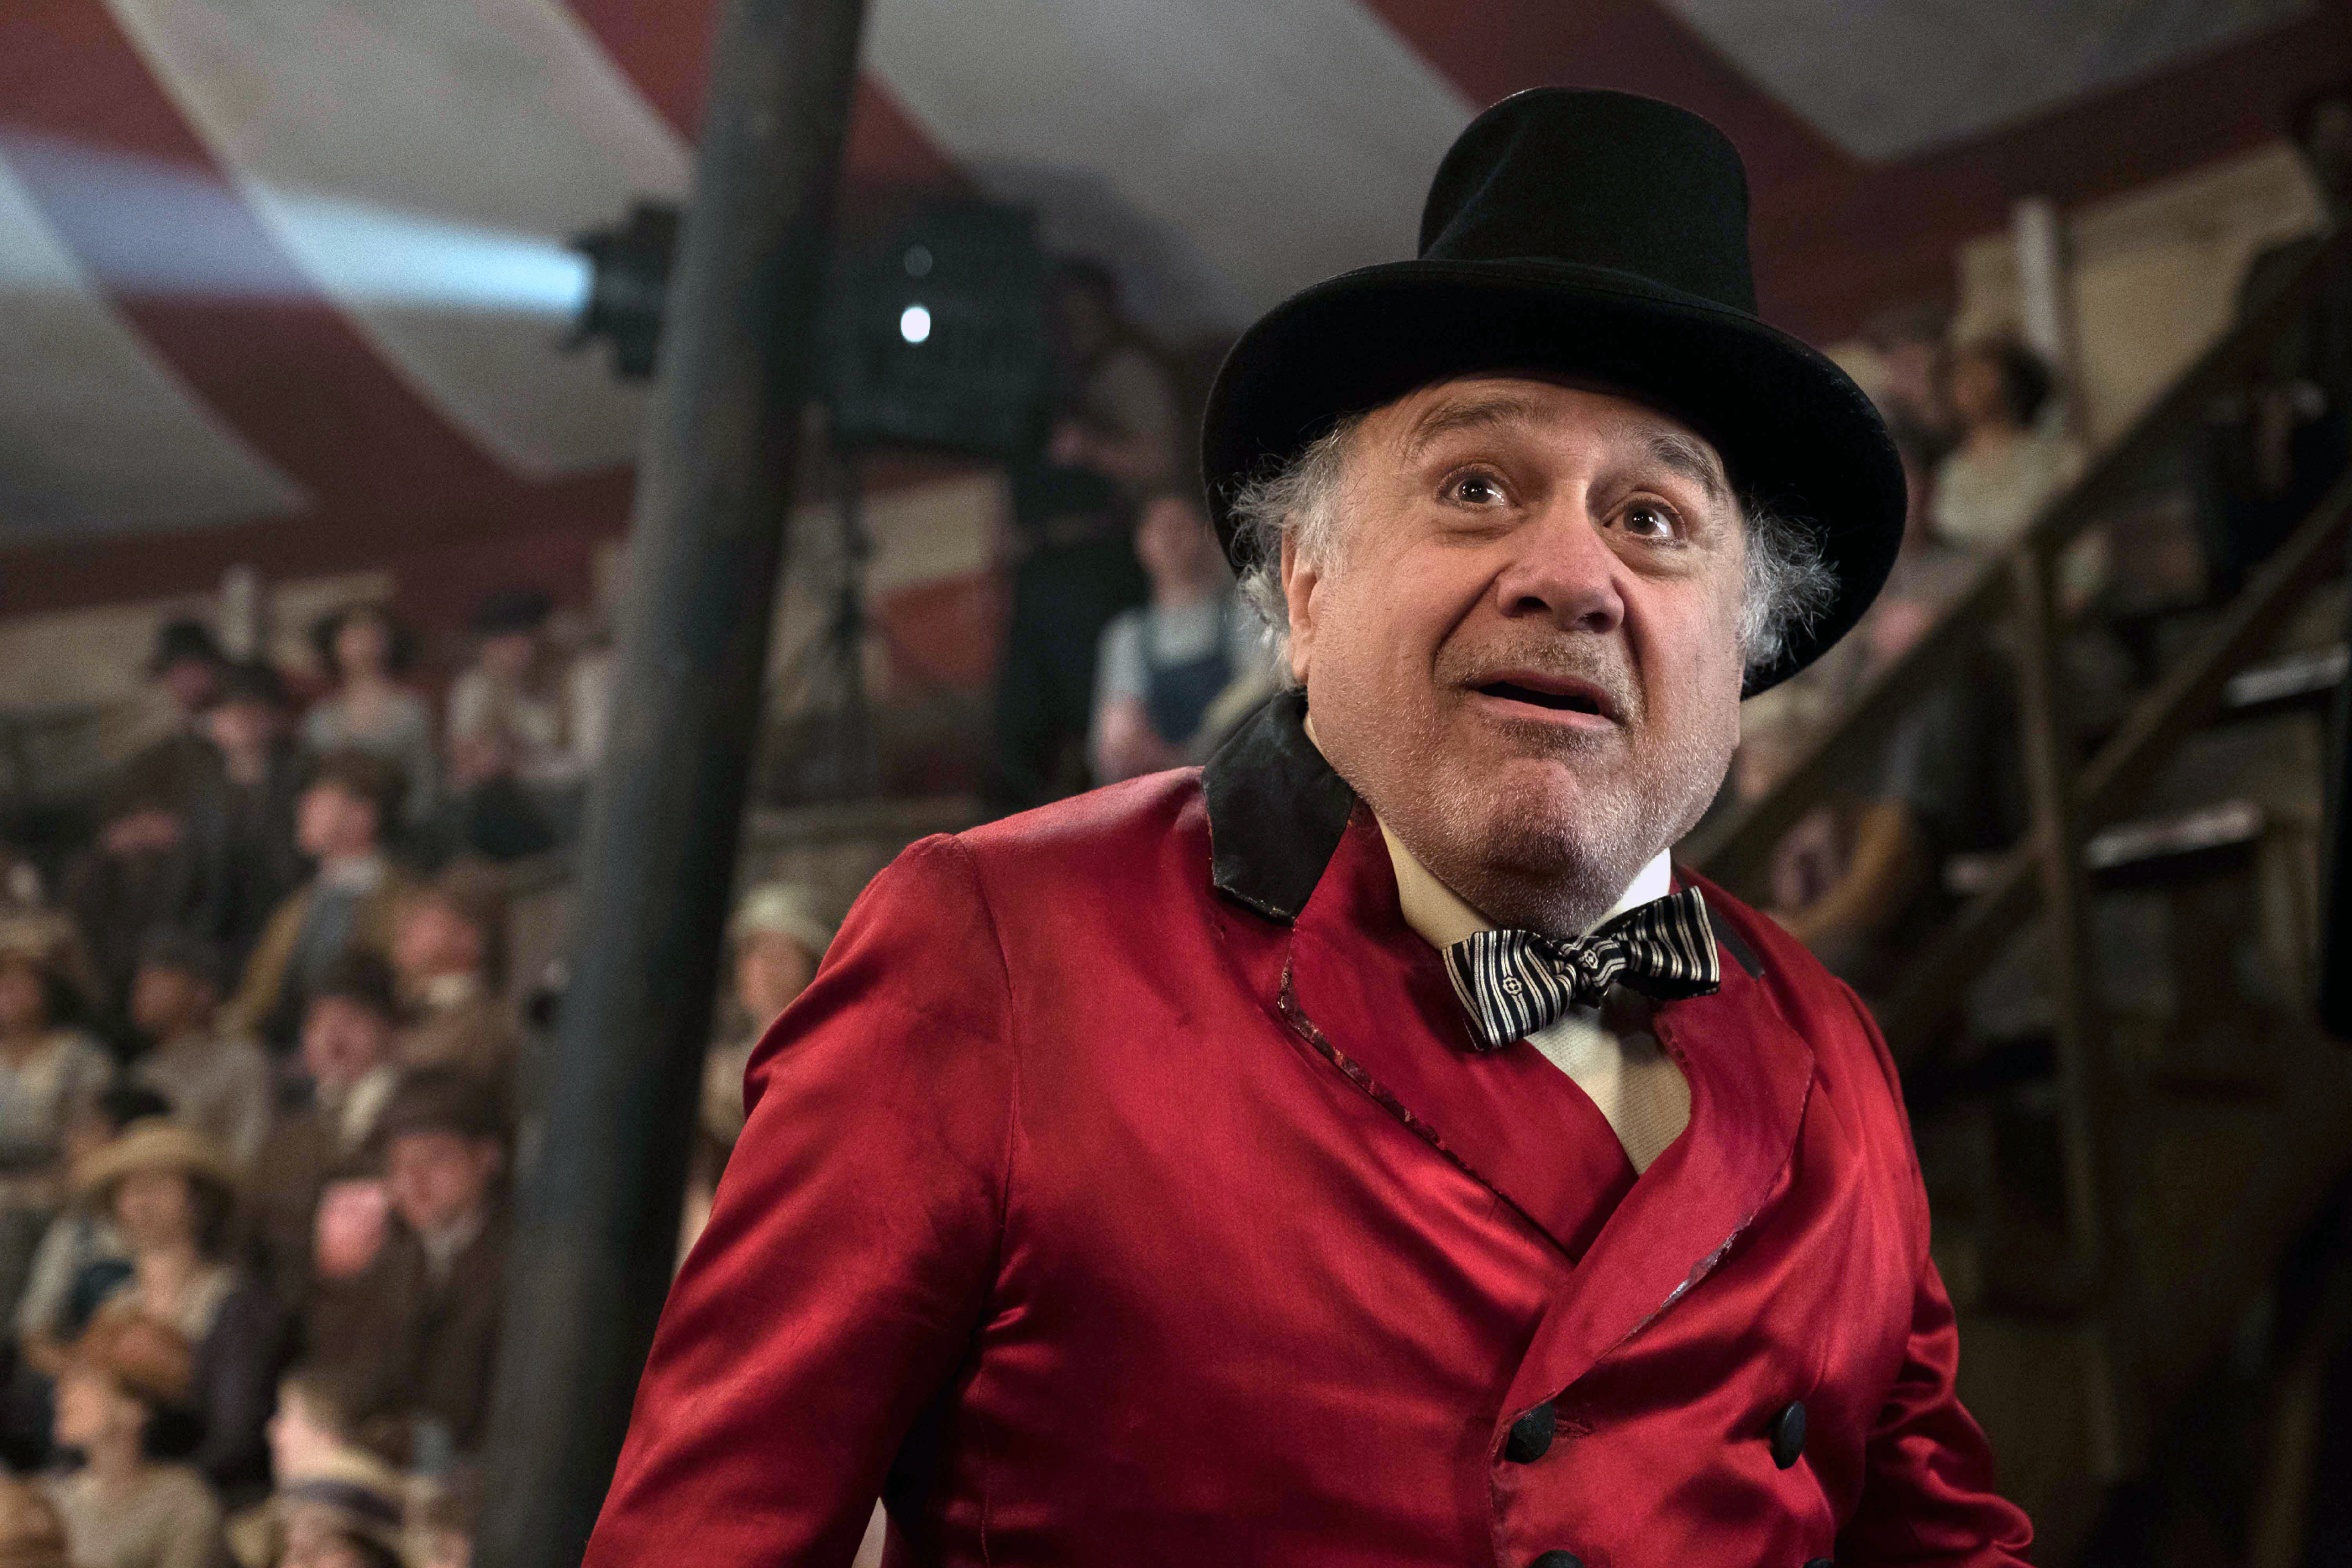 """In Tim Burton's all-new, live-action reimagining of """"Dumbo,"""" struggling circus owner Max Medici (Danny DeVito) is disappointed to learn that a newborn elephant has enormous ears. But when Medici realizes that the elephant can fly, the circus' return to prosperity suddenly becomes a real possibility."""